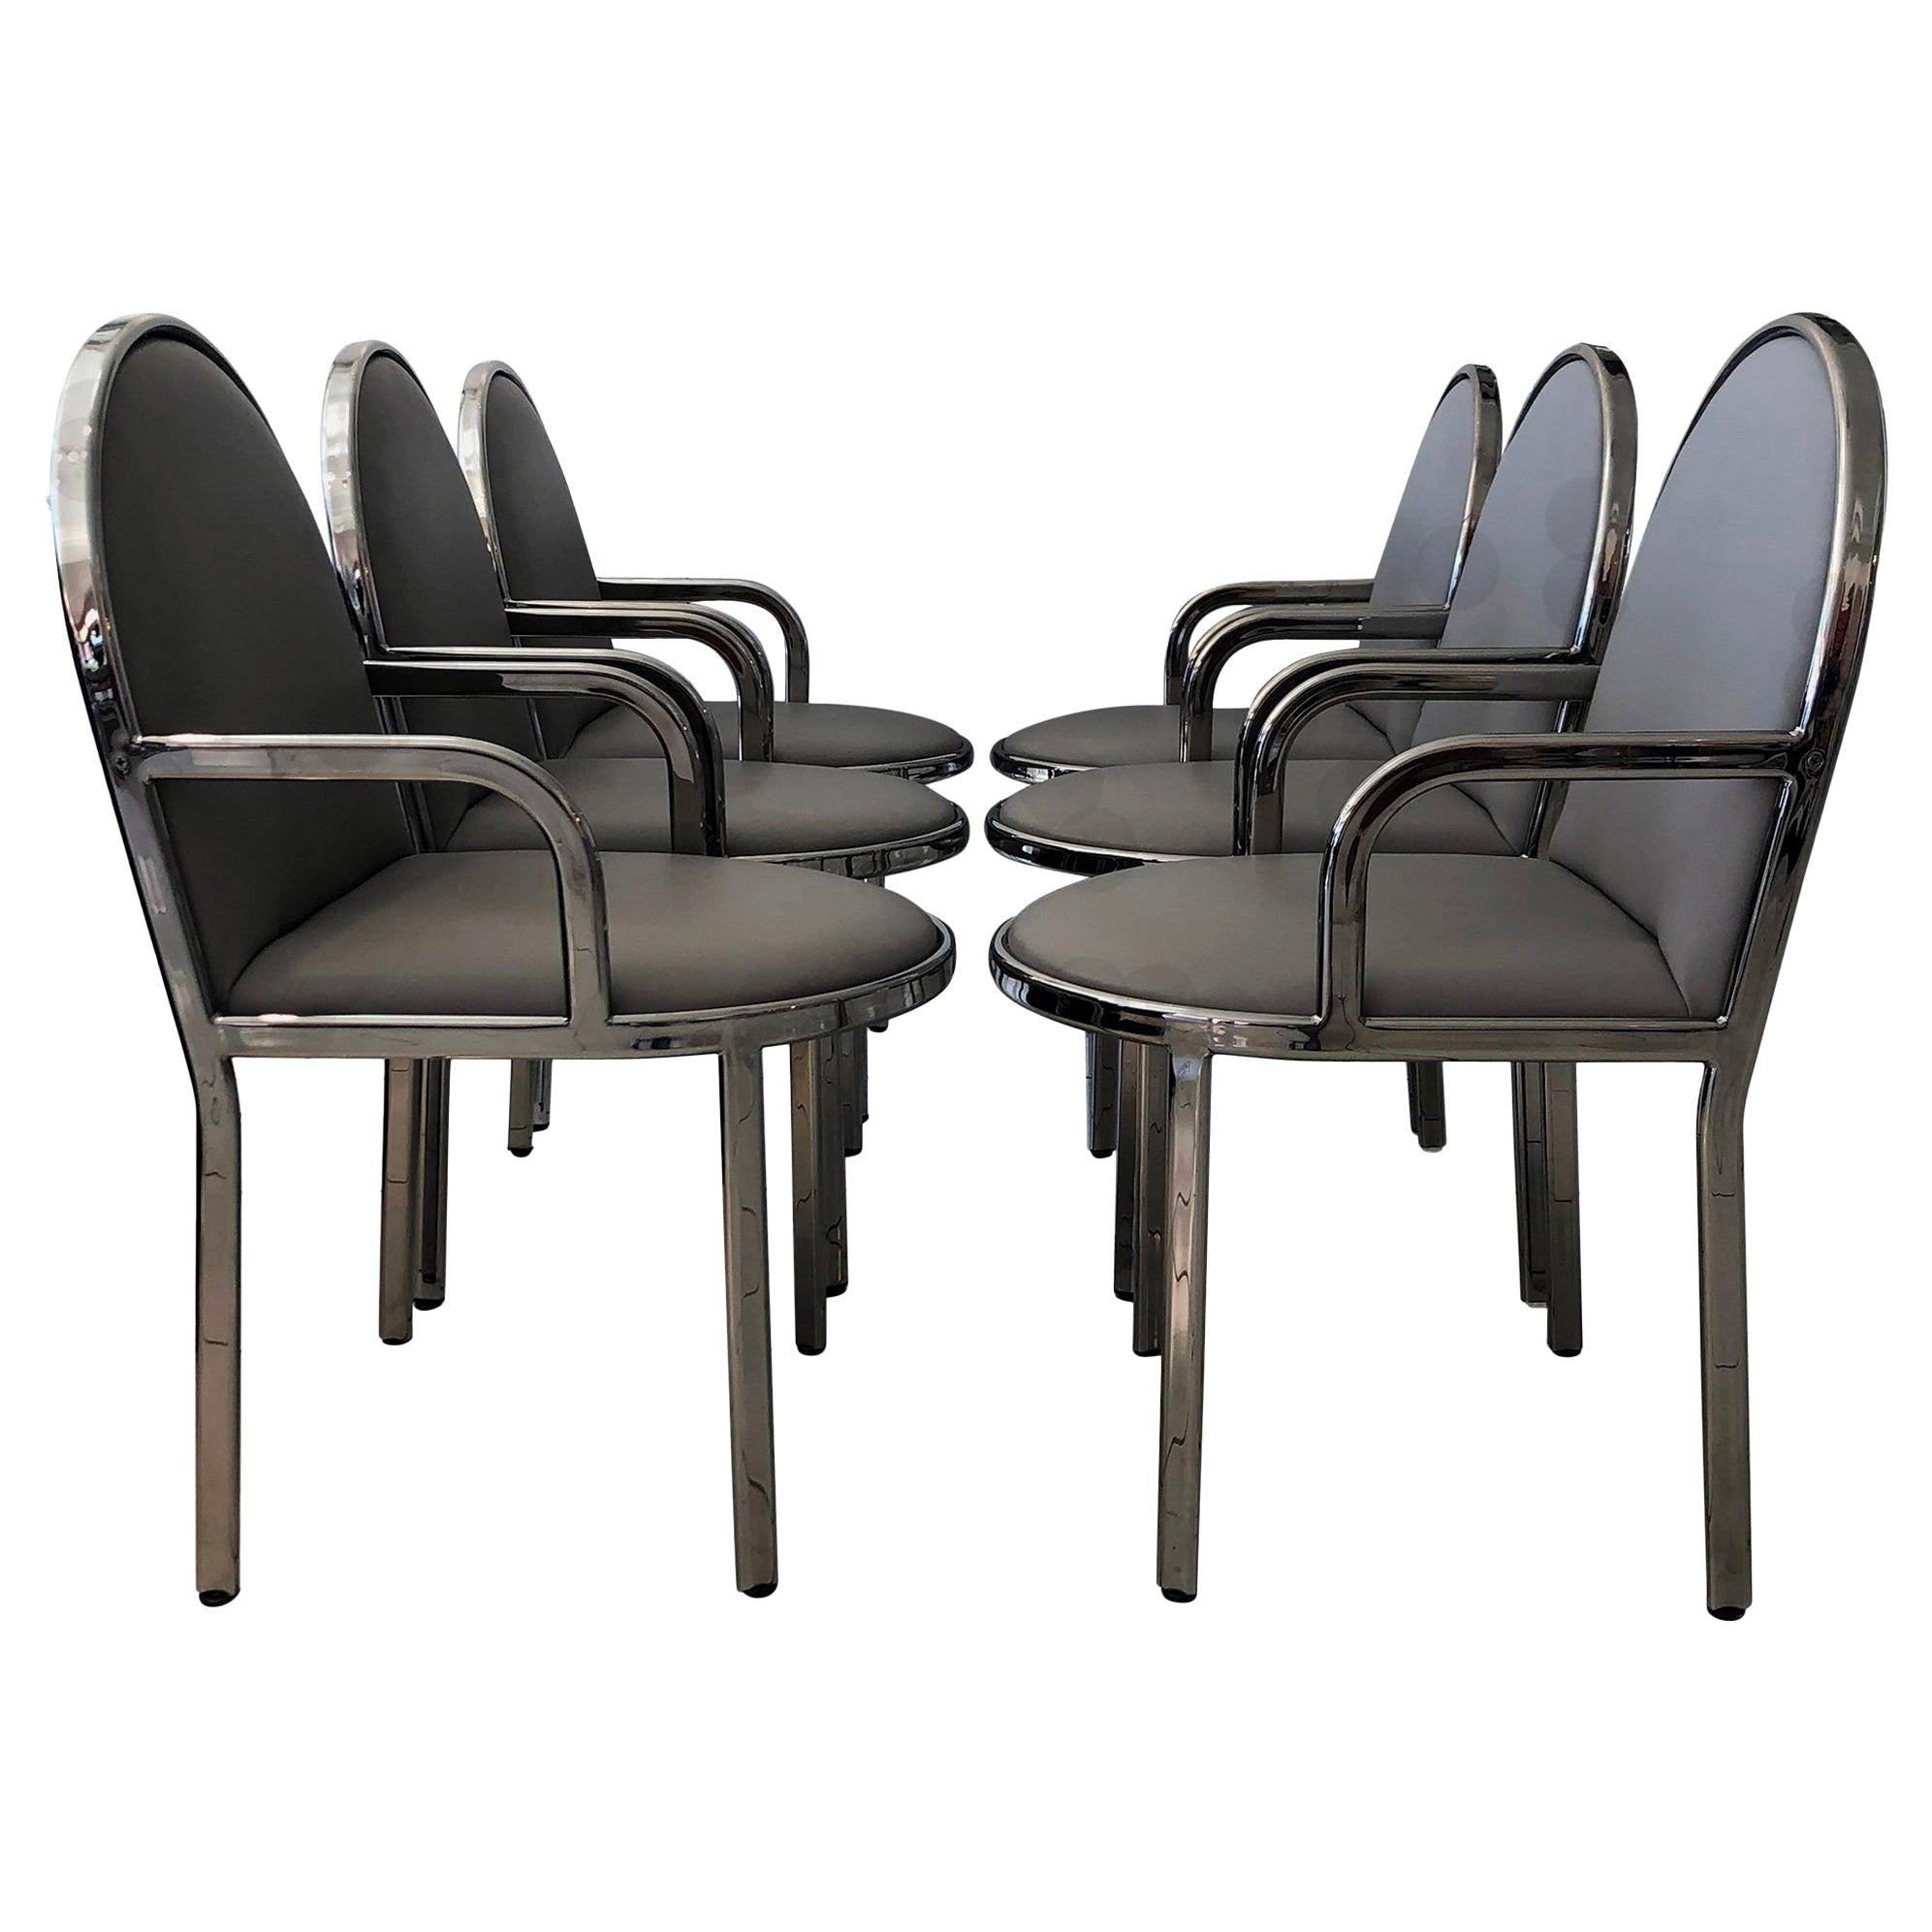 Set Of 6 Rougier Postmodern Chrome Dining Chairs For Sale At 1stdibs